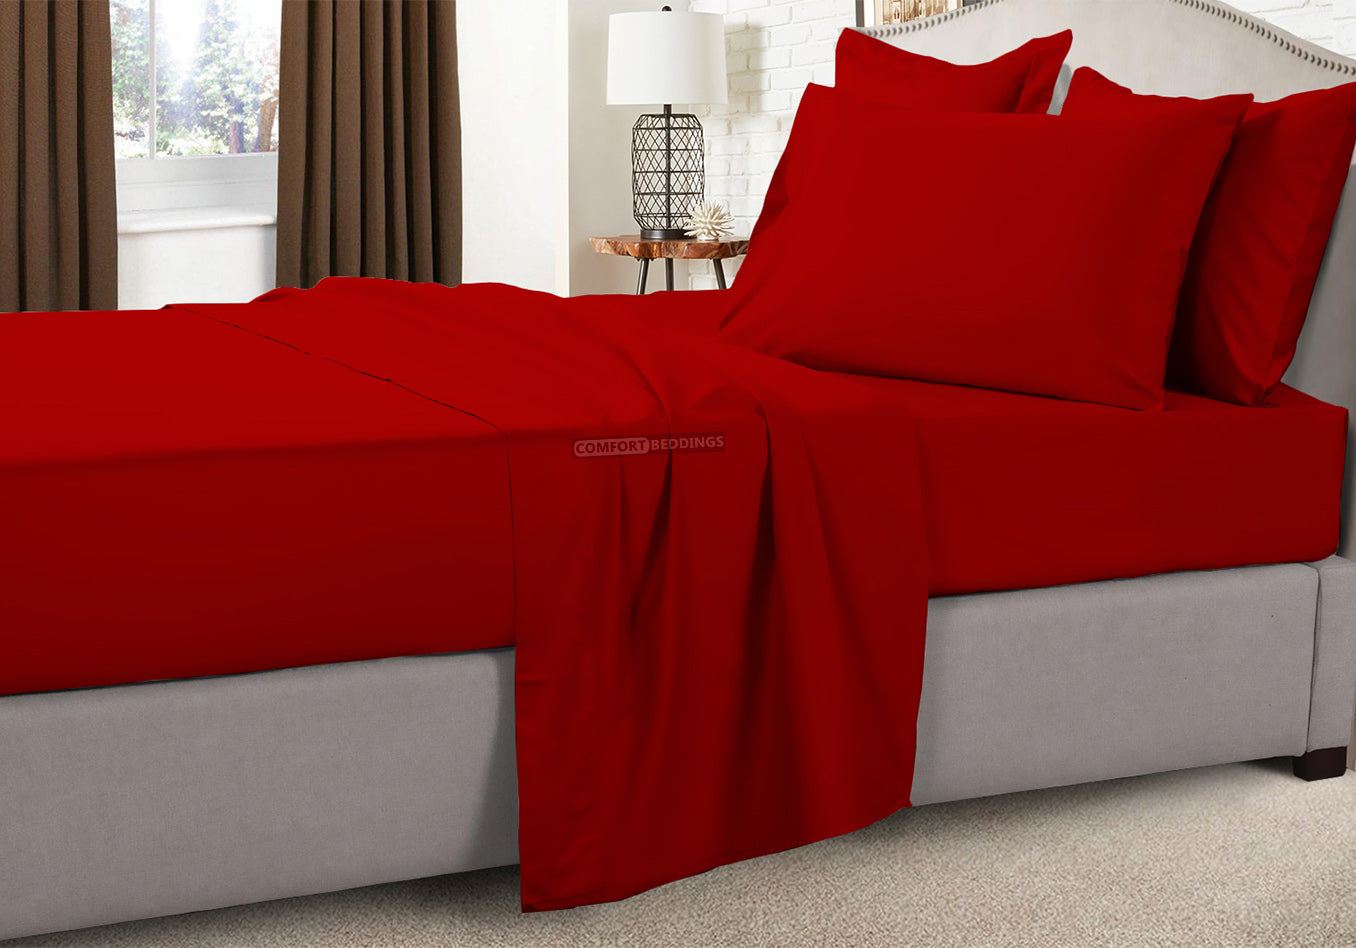 Wrinkle Free Blood Red Bunk Sheets Set